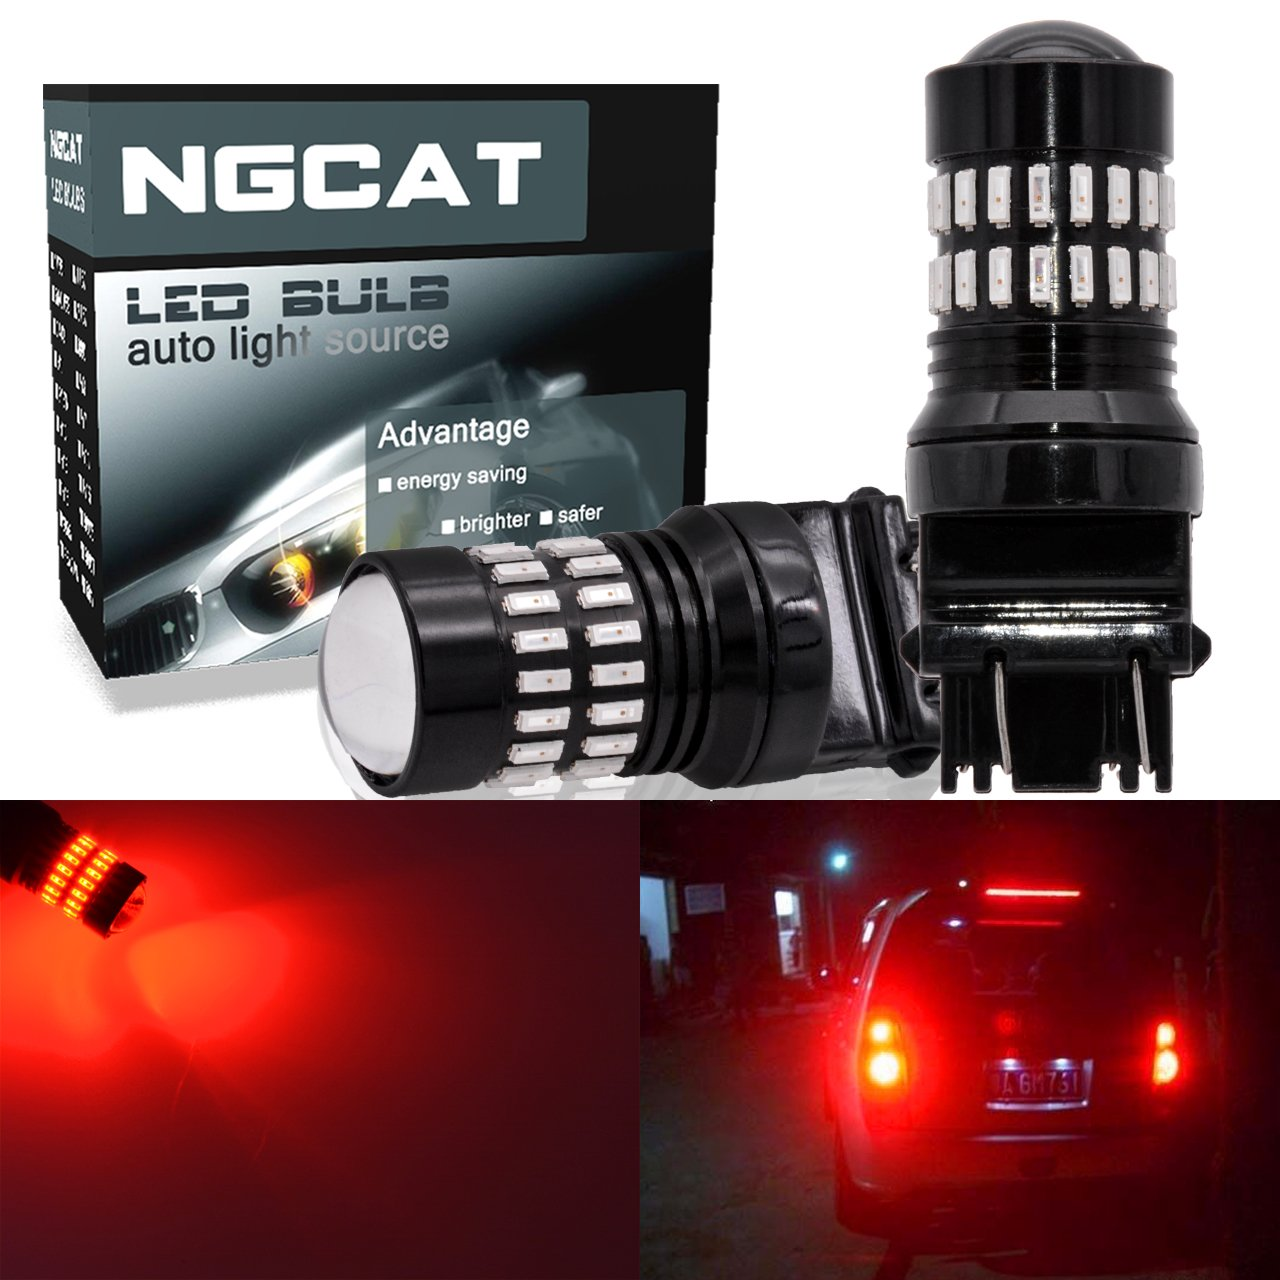 NGCAT 1200LM Xenon White 3157 LED Bulbs Extremely Bright 48-SMD 4014 LED Chipsets T25 3156 3057 4057 4157 LED Bulbs with Projector for Turn Signal Lights Tail Backup Reverse Lights(Pack of 2)